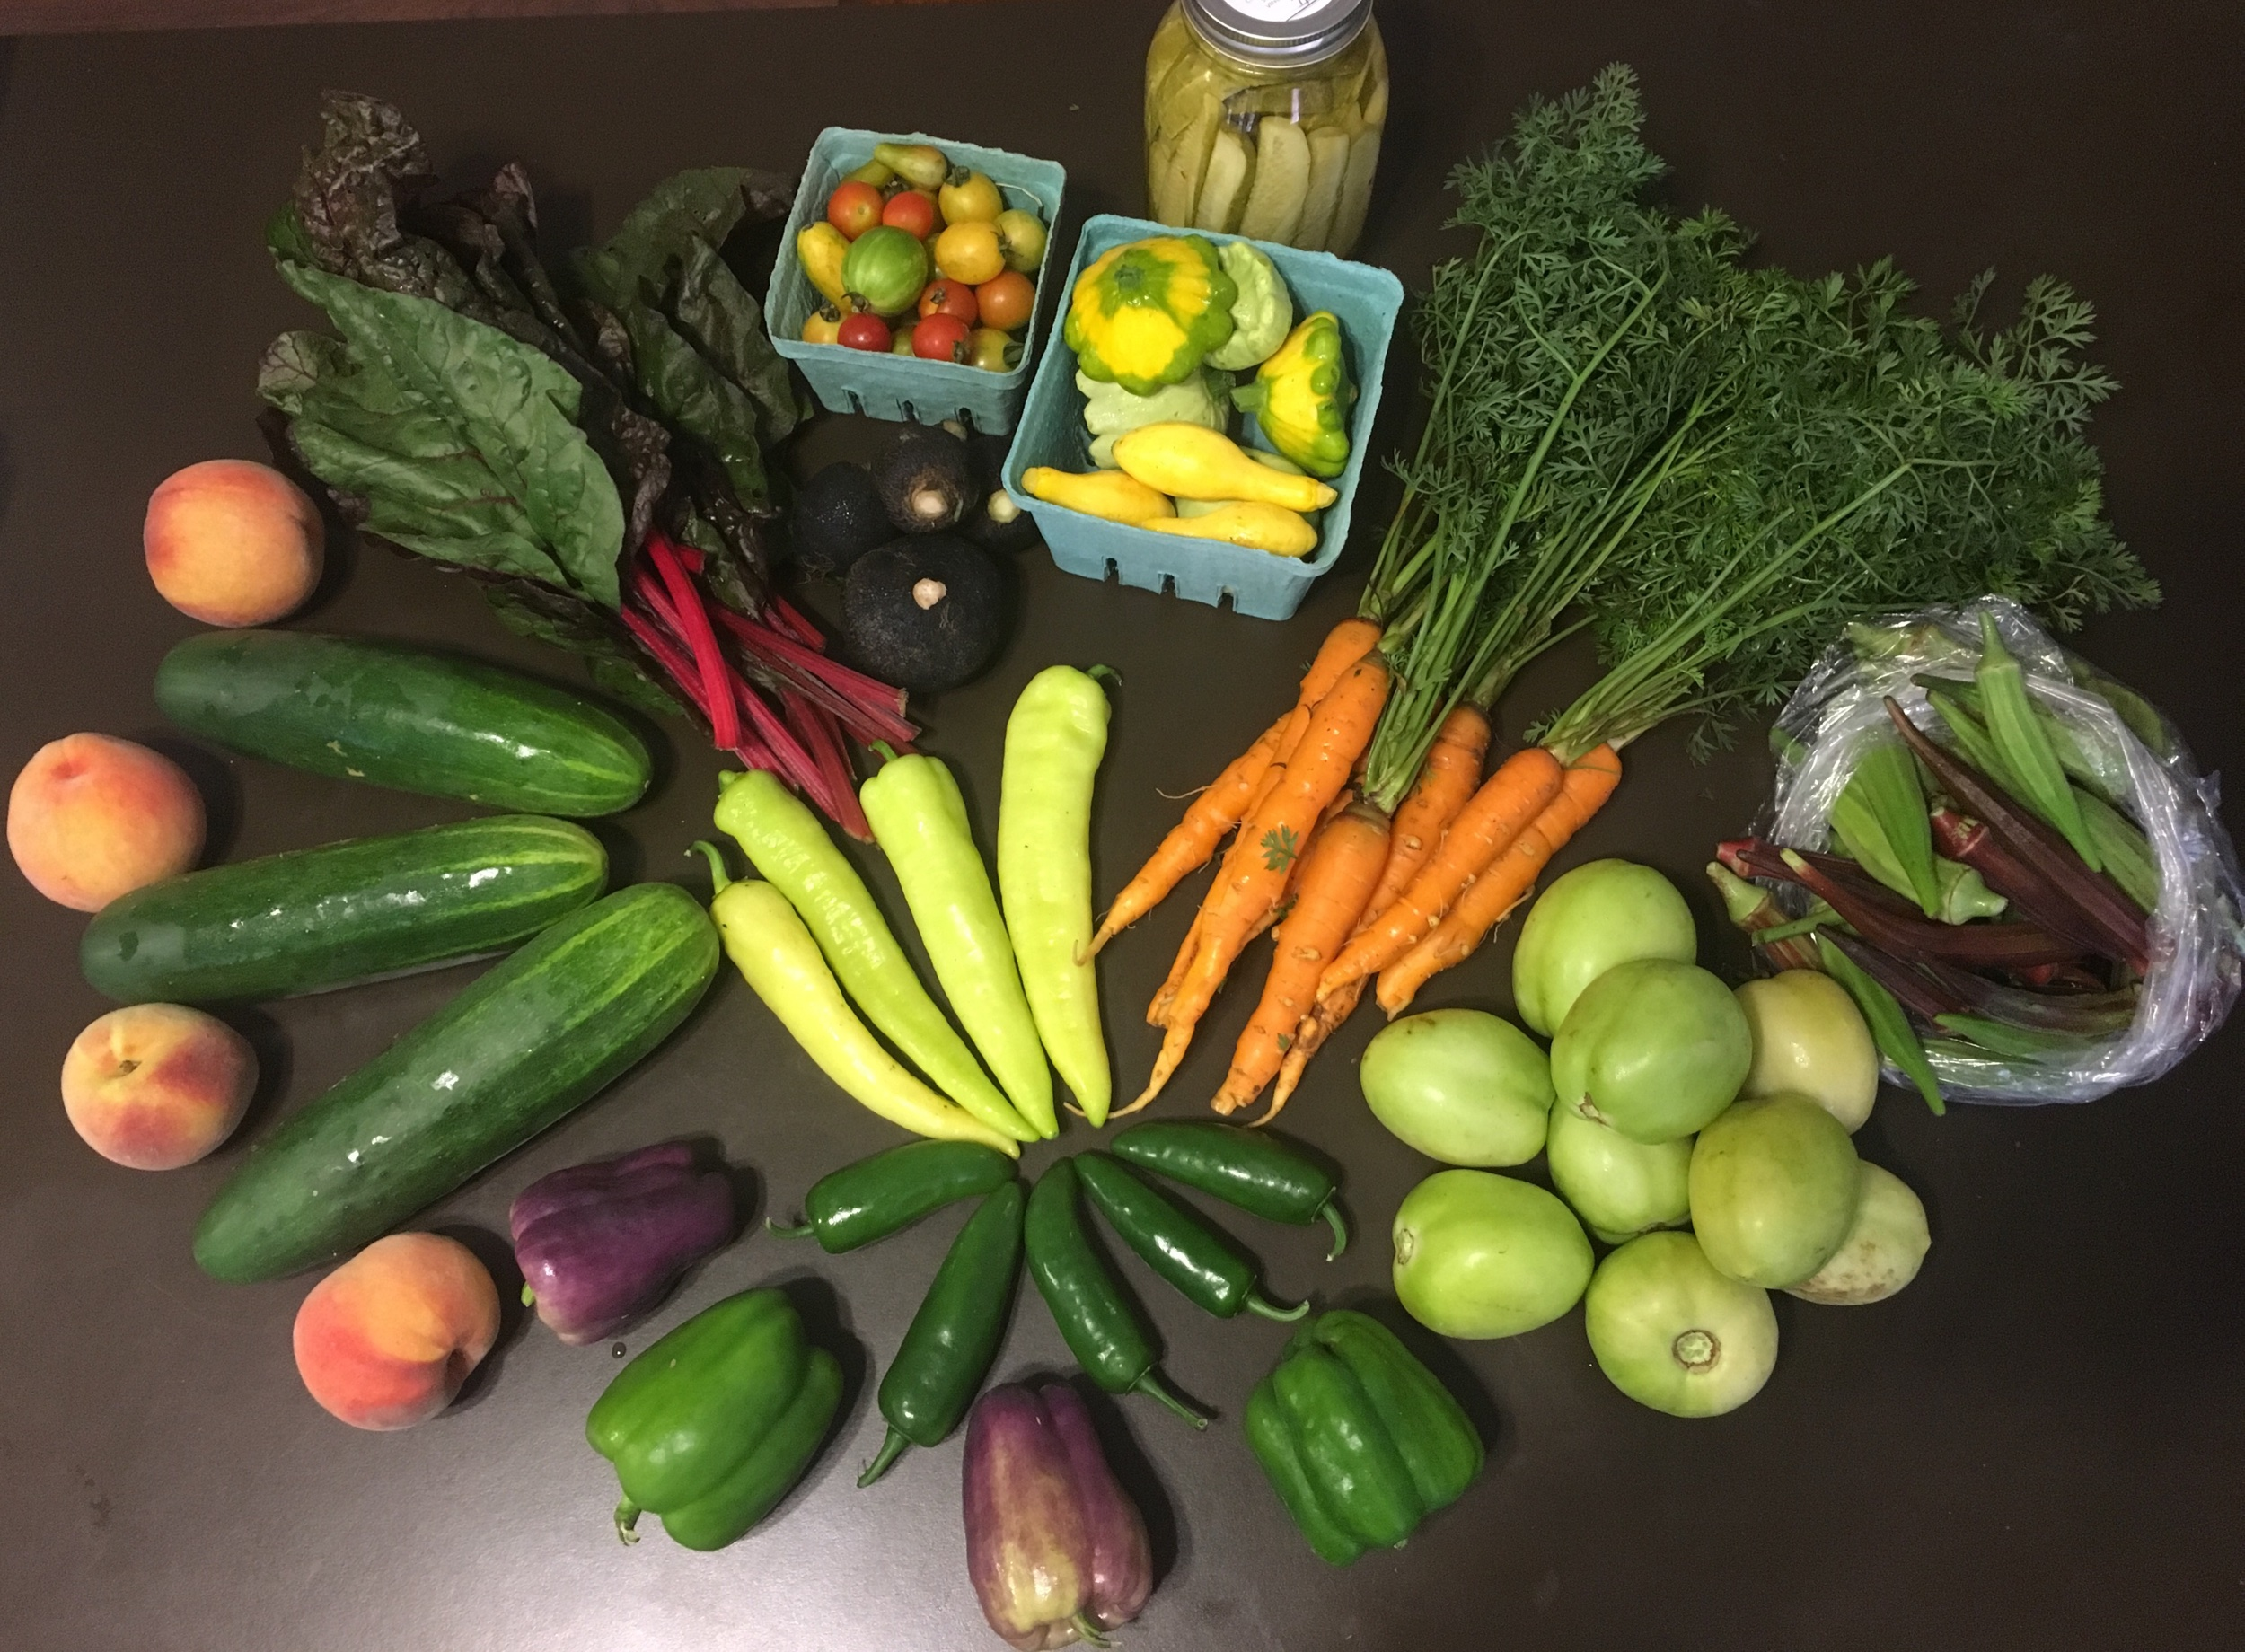 Peaches, slicing cucumbers, Swiss chard, black radishes, cherry tomatoes, assorted squash, pickles, carrots, okra, banana peppers, jalapeños, purple and green bell peppers, green tomatoes.